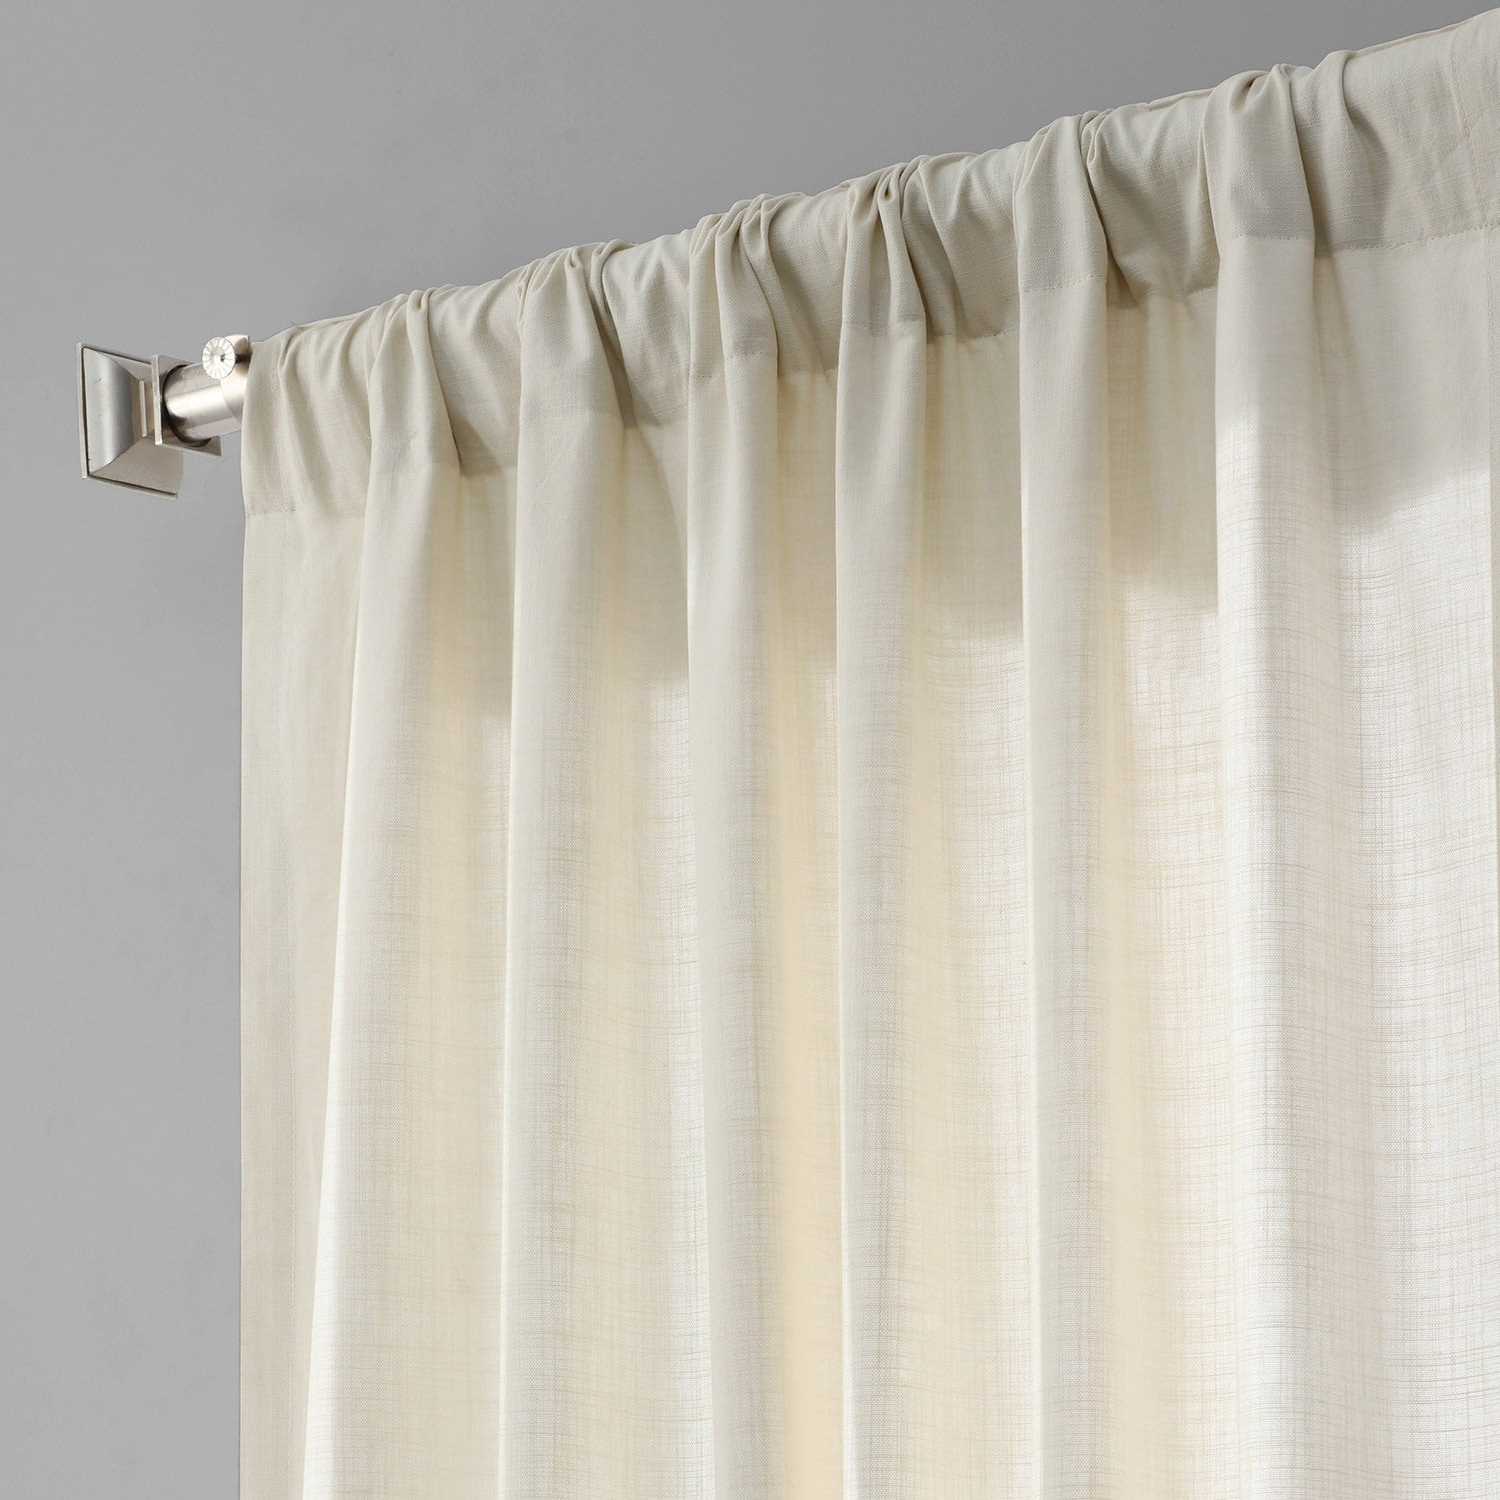 Most Recent Exclusive Fabrics Solid Country Cotton Linen Weave Curtain Panel With Solid Country Cotton Linen Weave Curtain Panels (View 4 of 20)